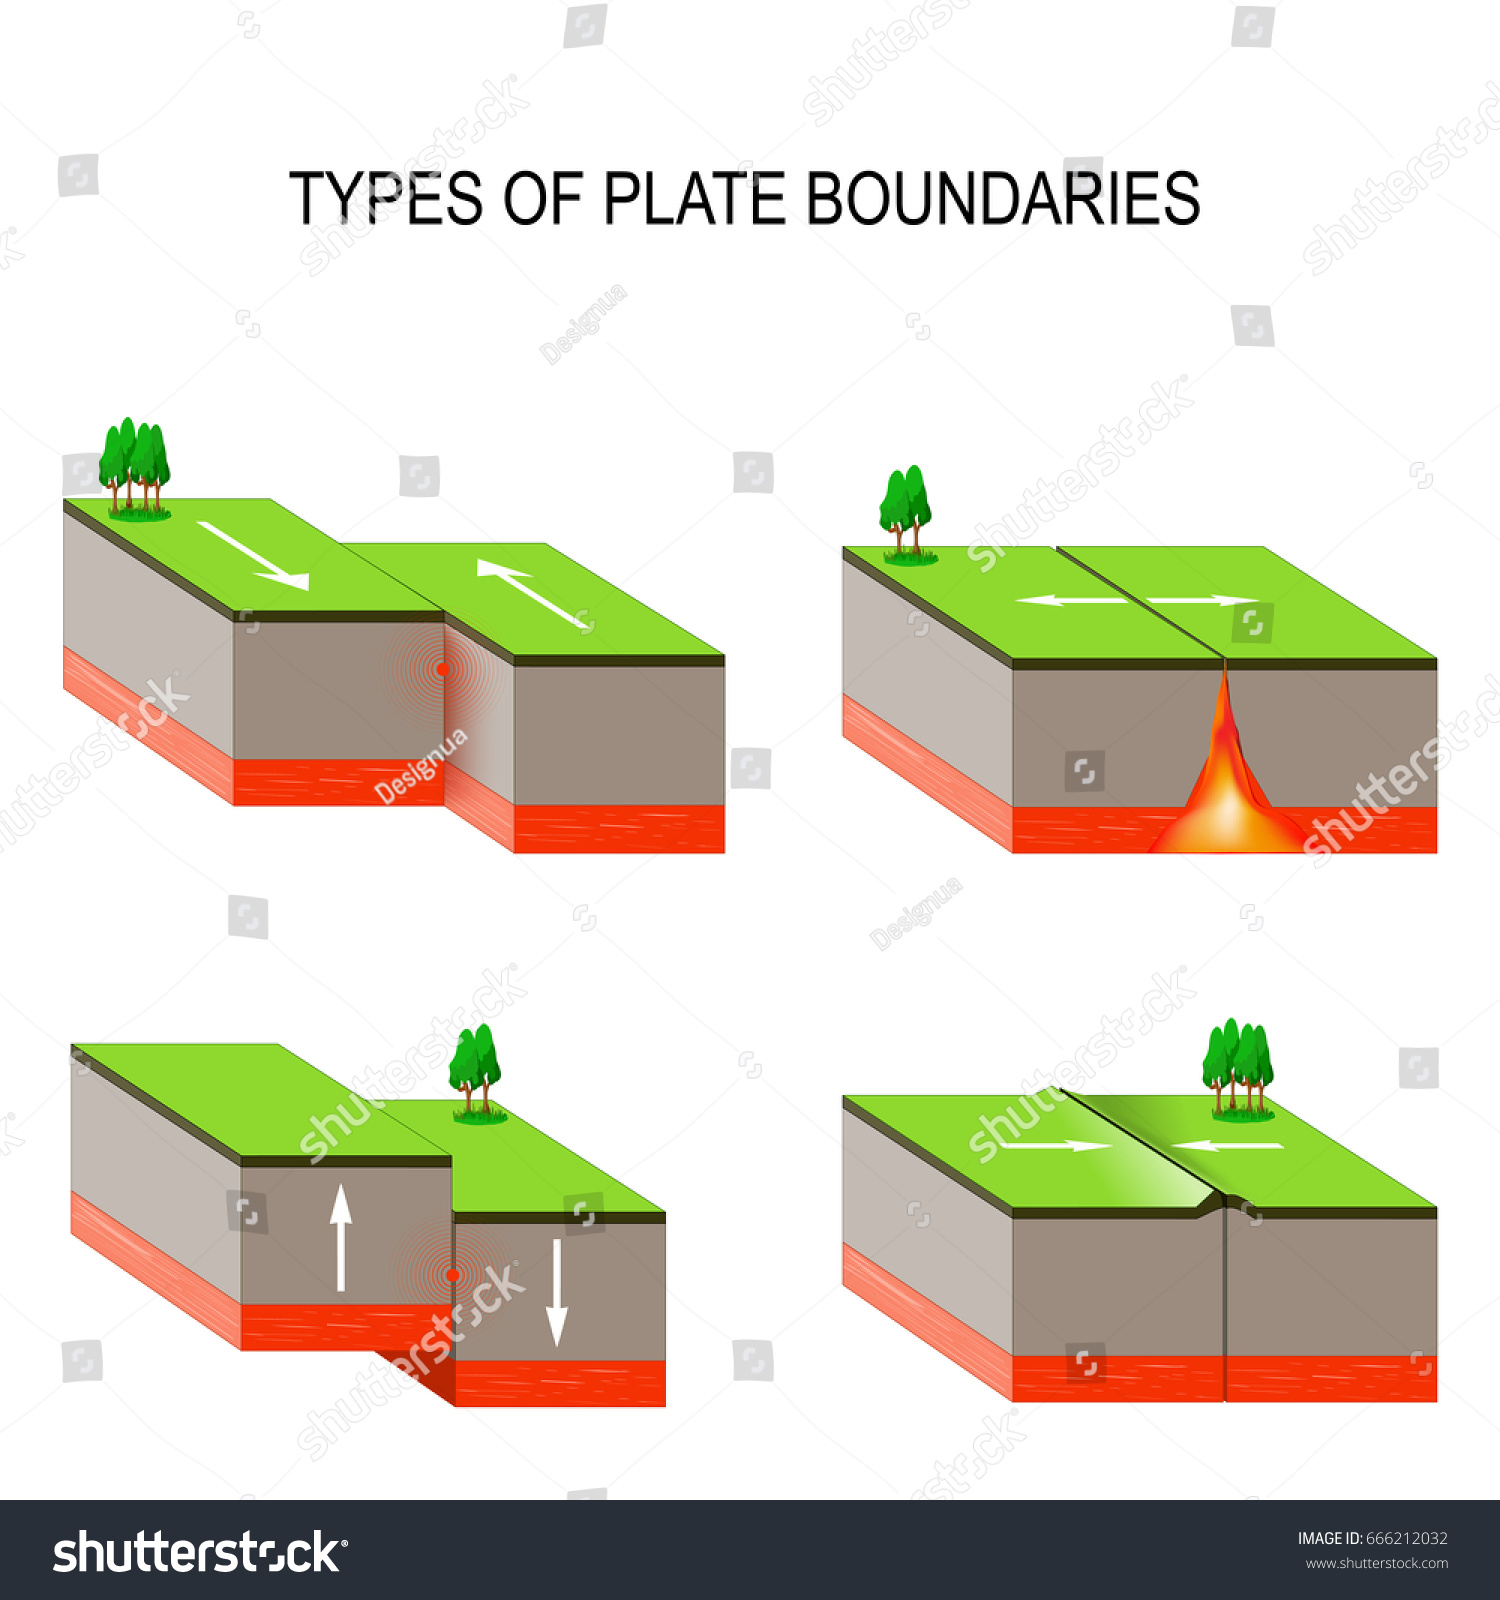 Tectonic Plate Interactions Types Plate Boundaries Stock